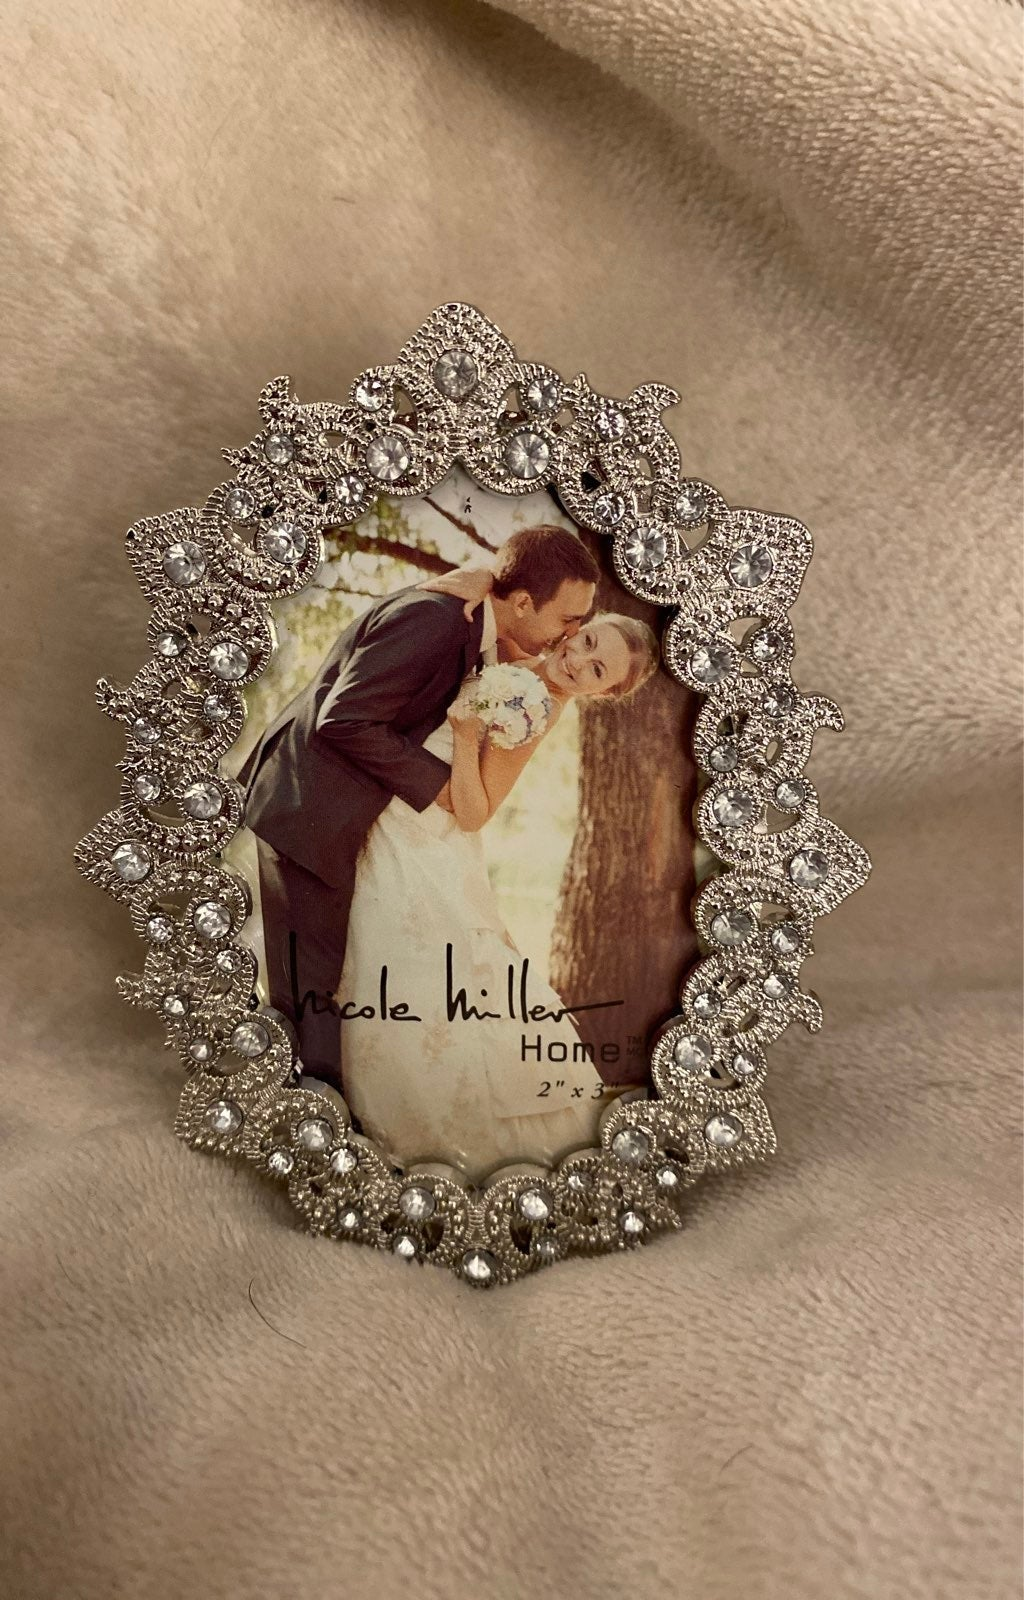 Nicole Miller Small Photo Frame